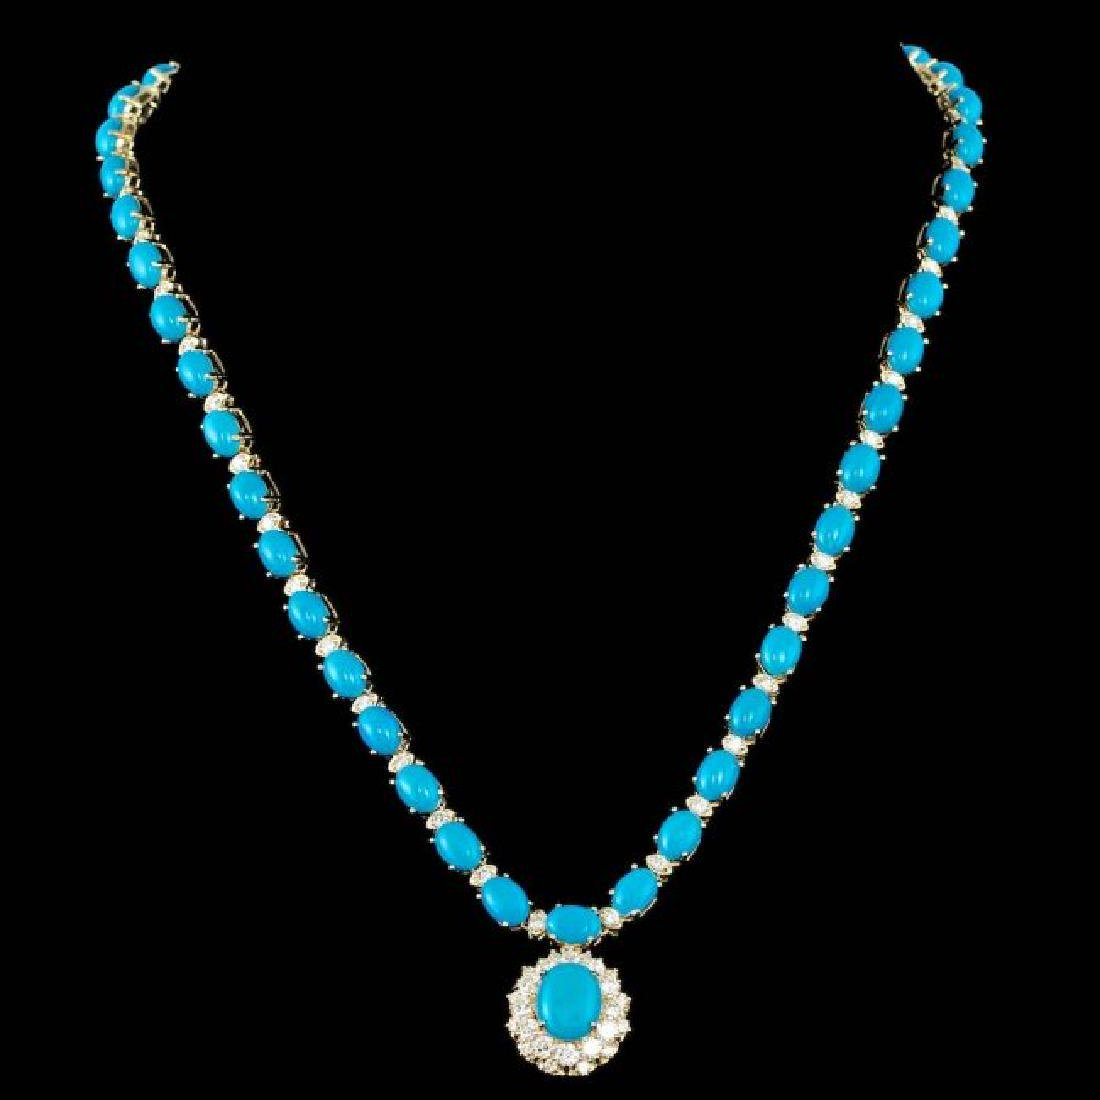 14k Gold 35.5ct Turquoise 3.50ct Diamond Necklace